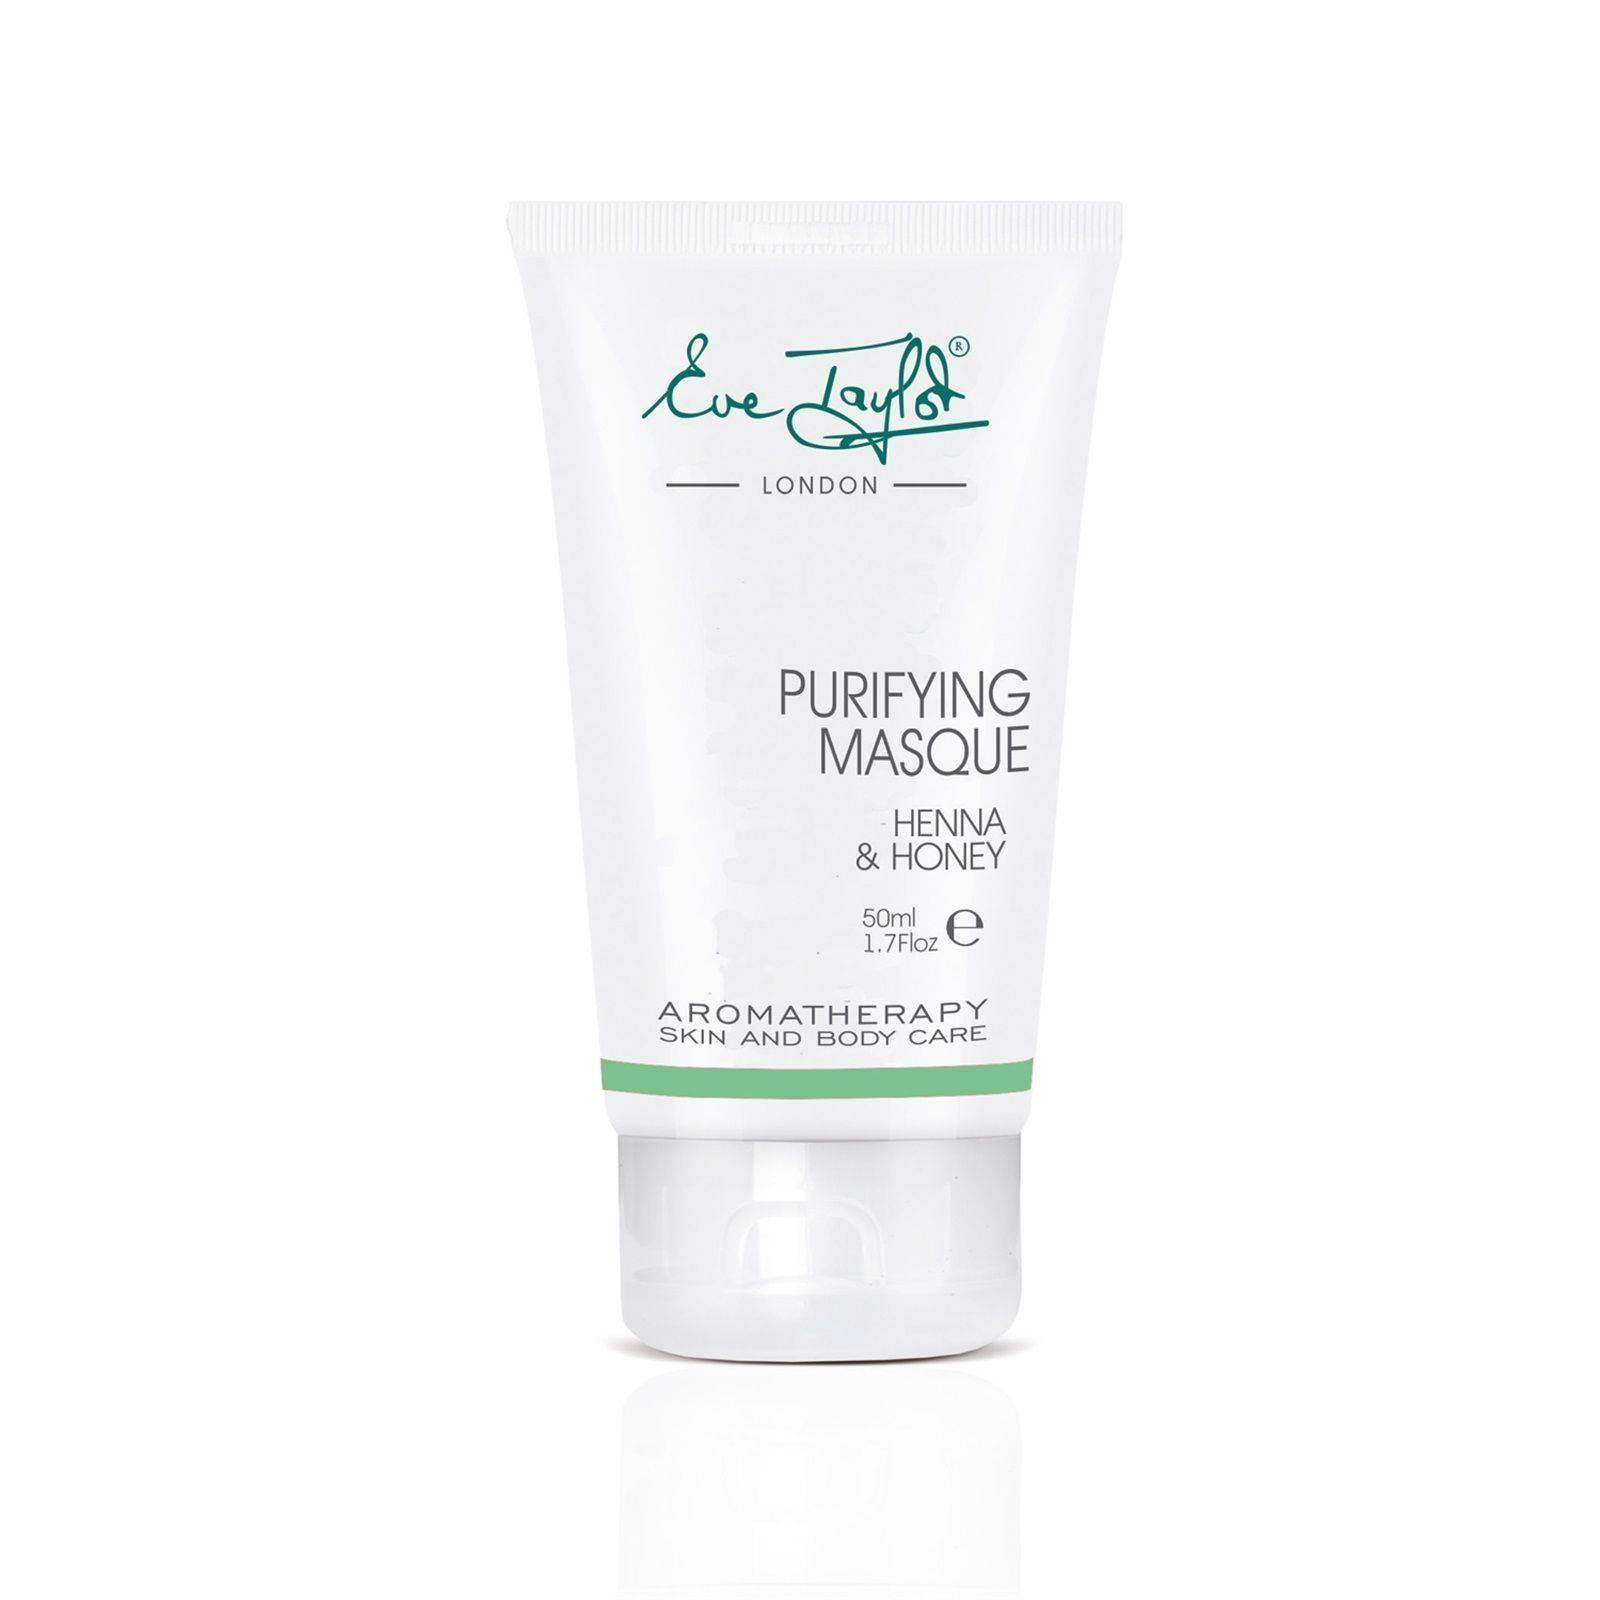 Purifying Masque 50ml